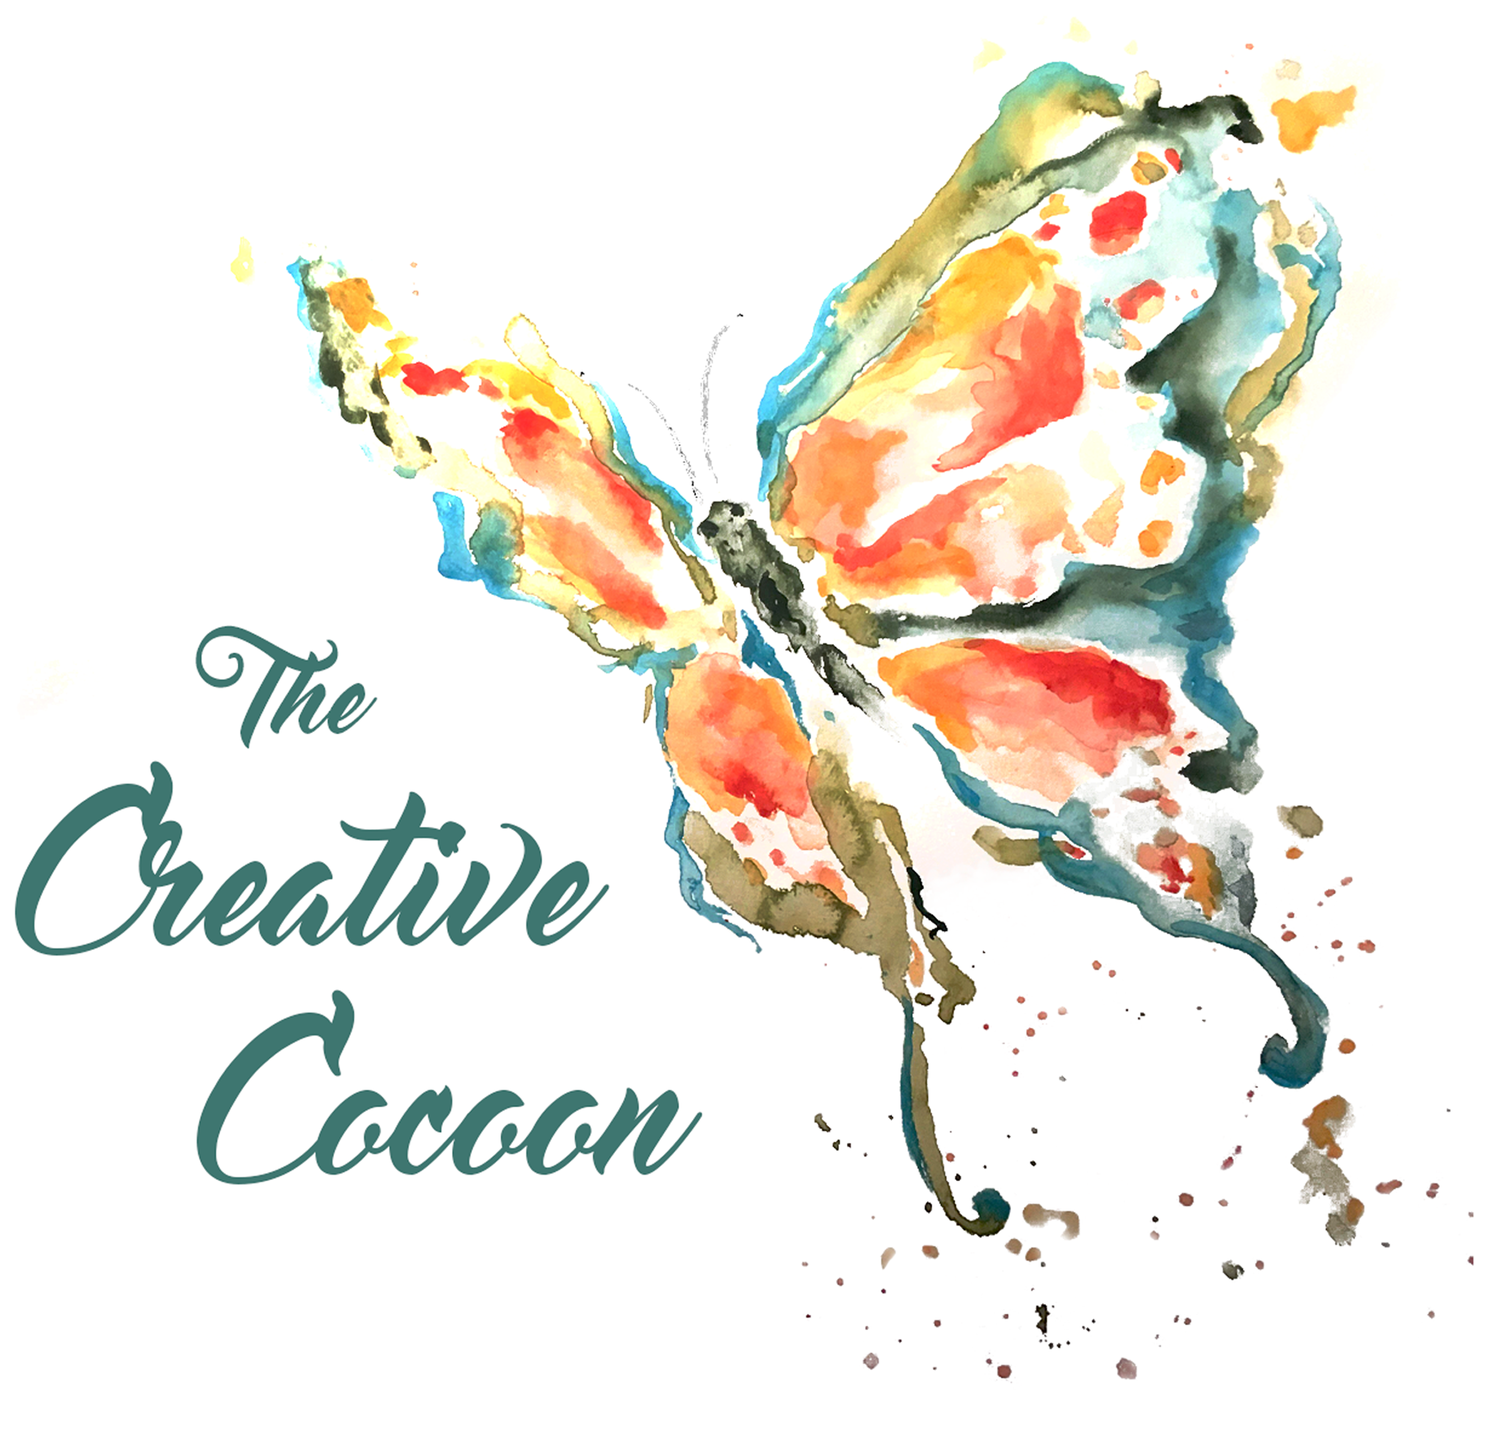 The Creative Cocoon